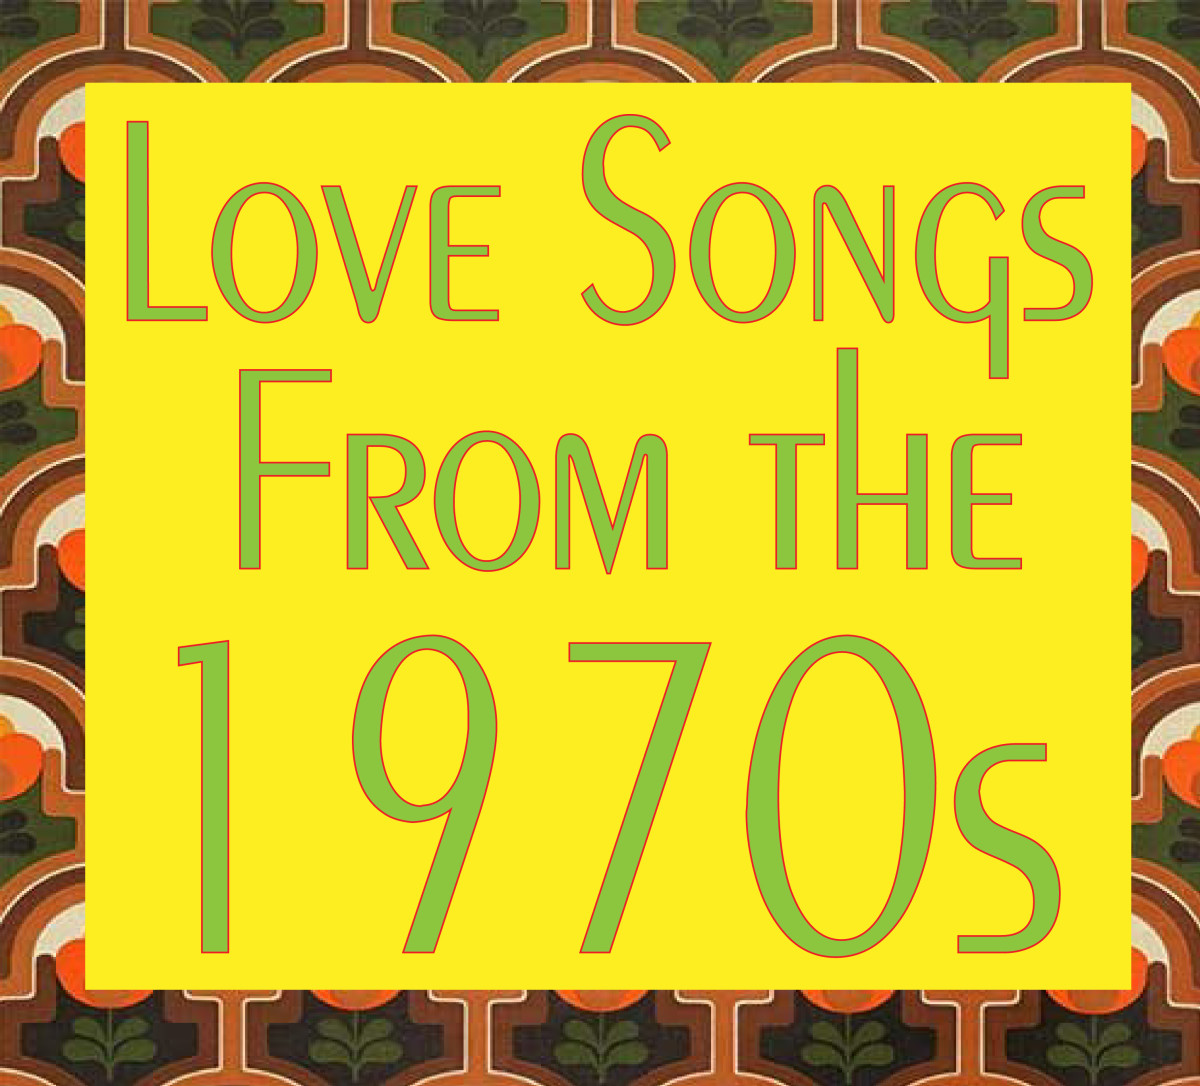 11 Love Songs From the Seventies